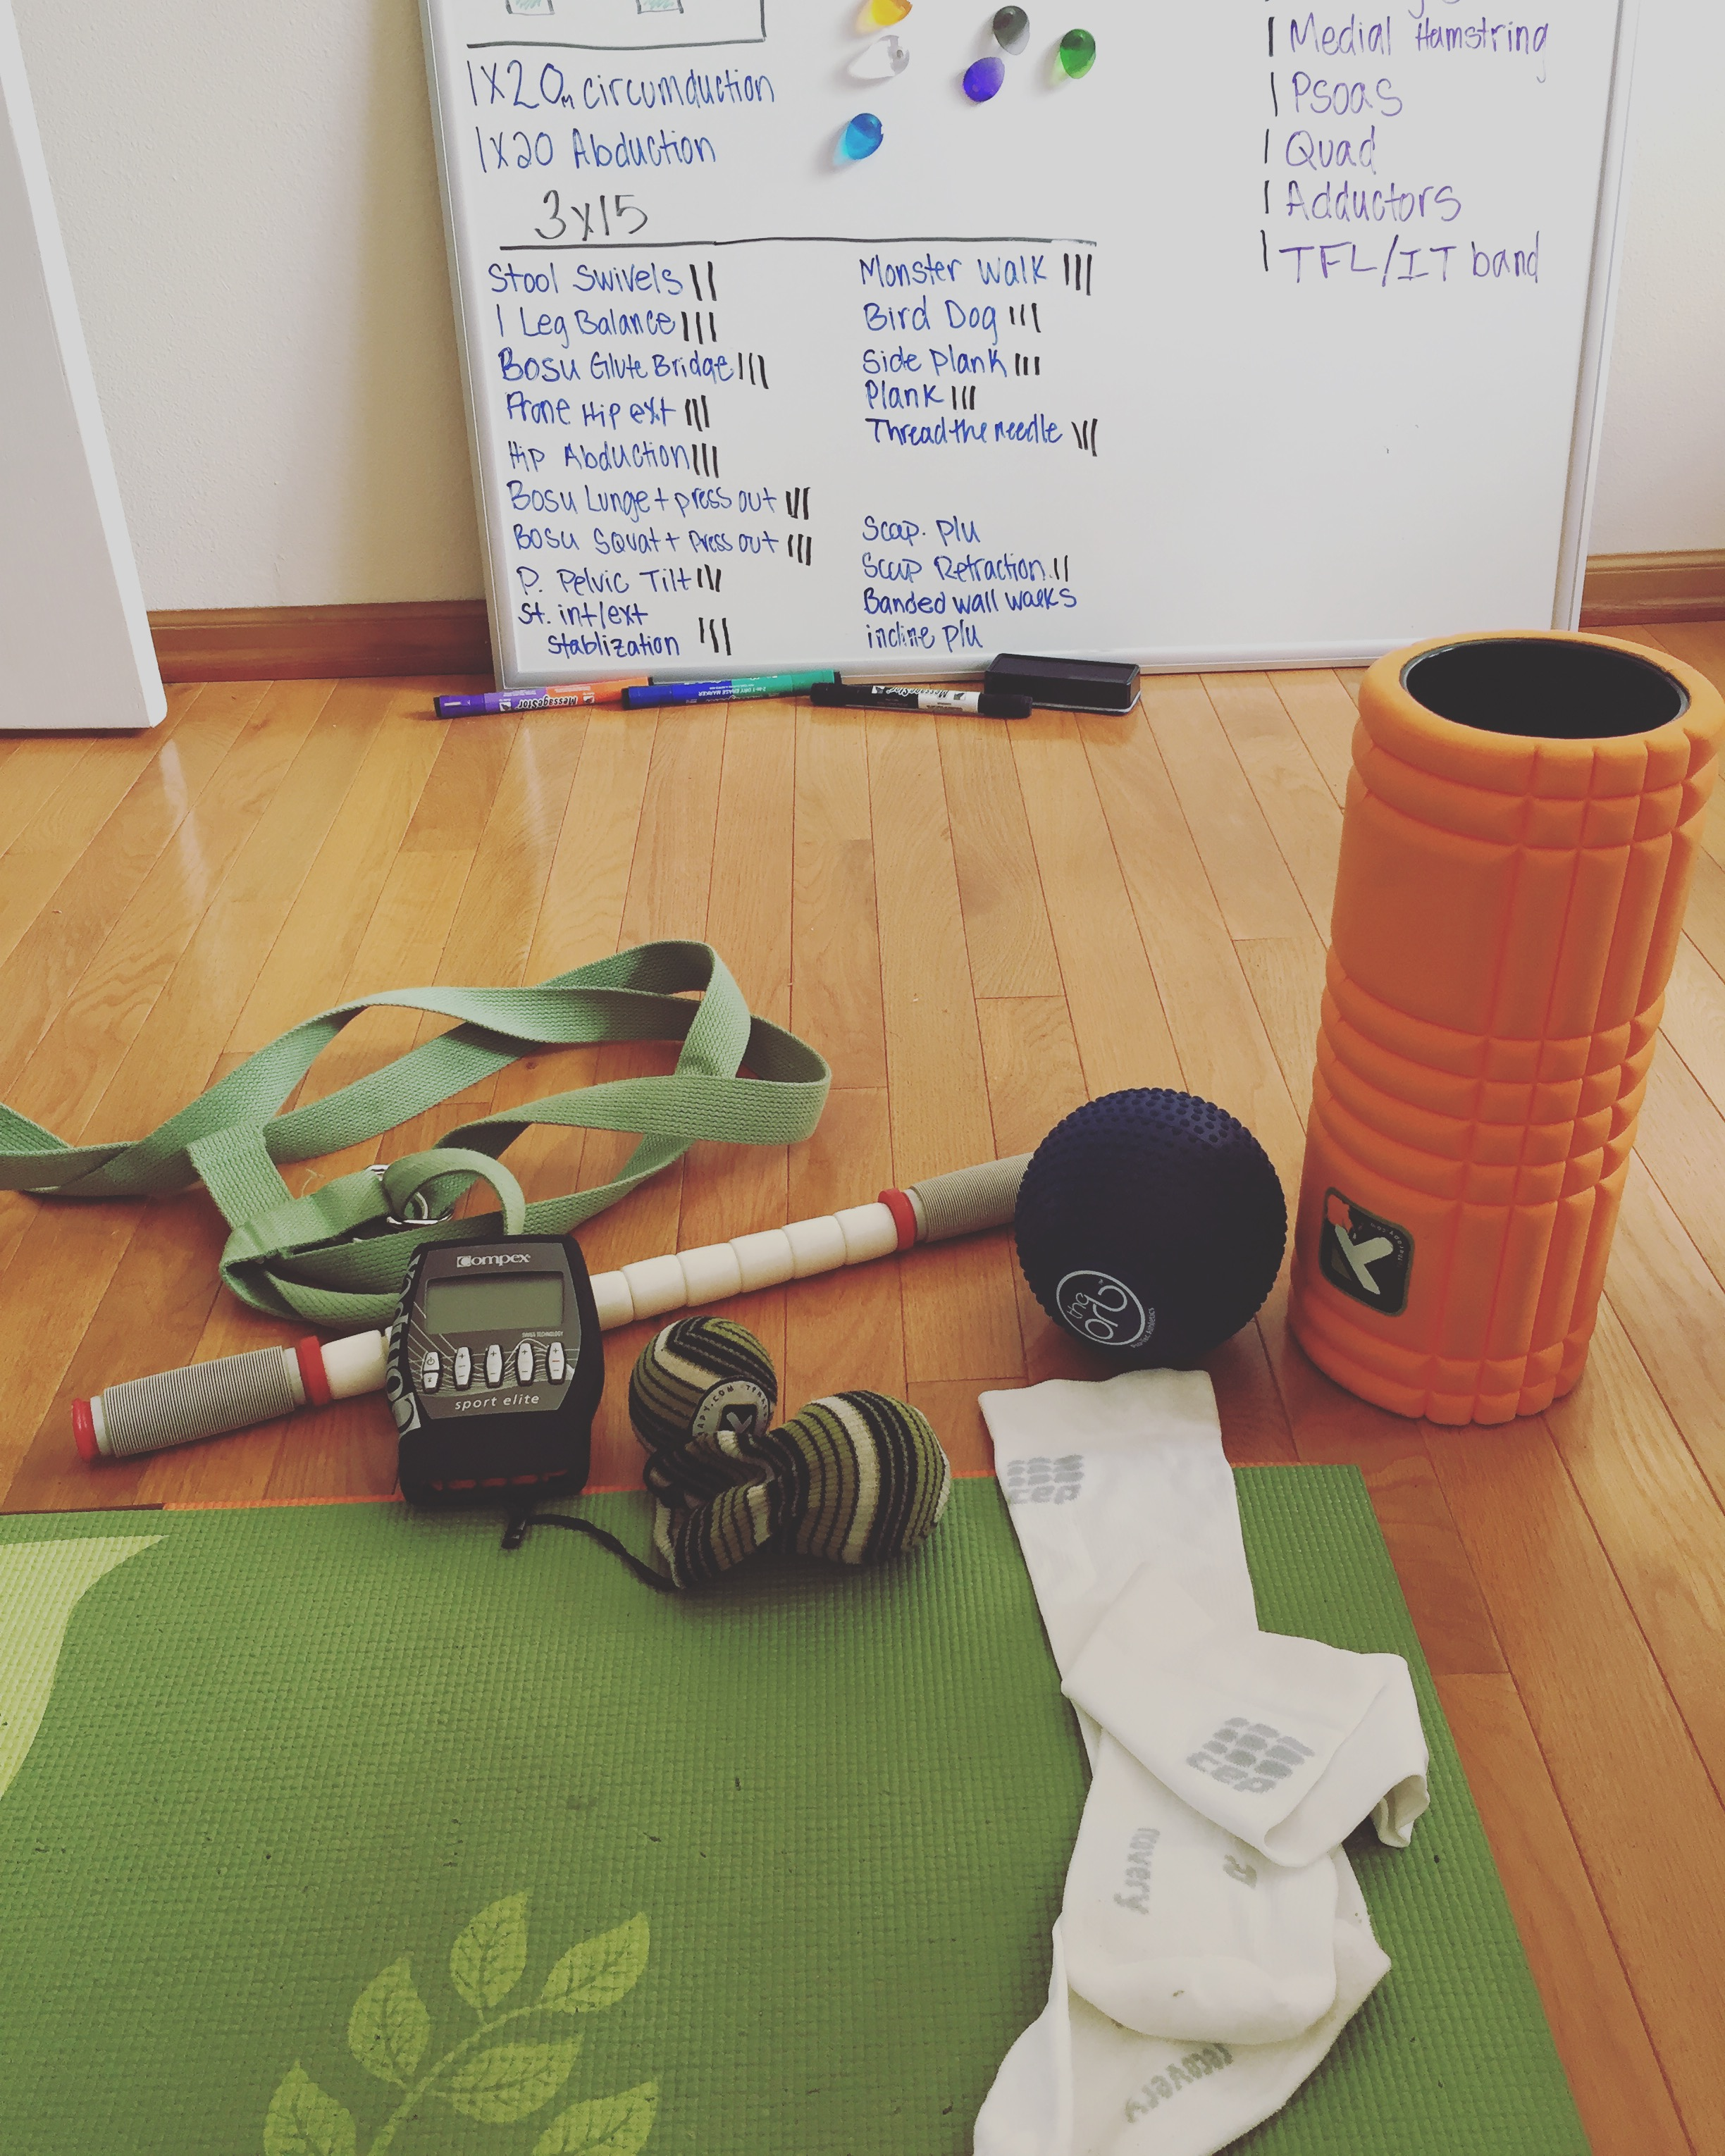 Some of my favorite recovery tools I use nearly daily. Plus a sneak peak at some of my PT exercises.